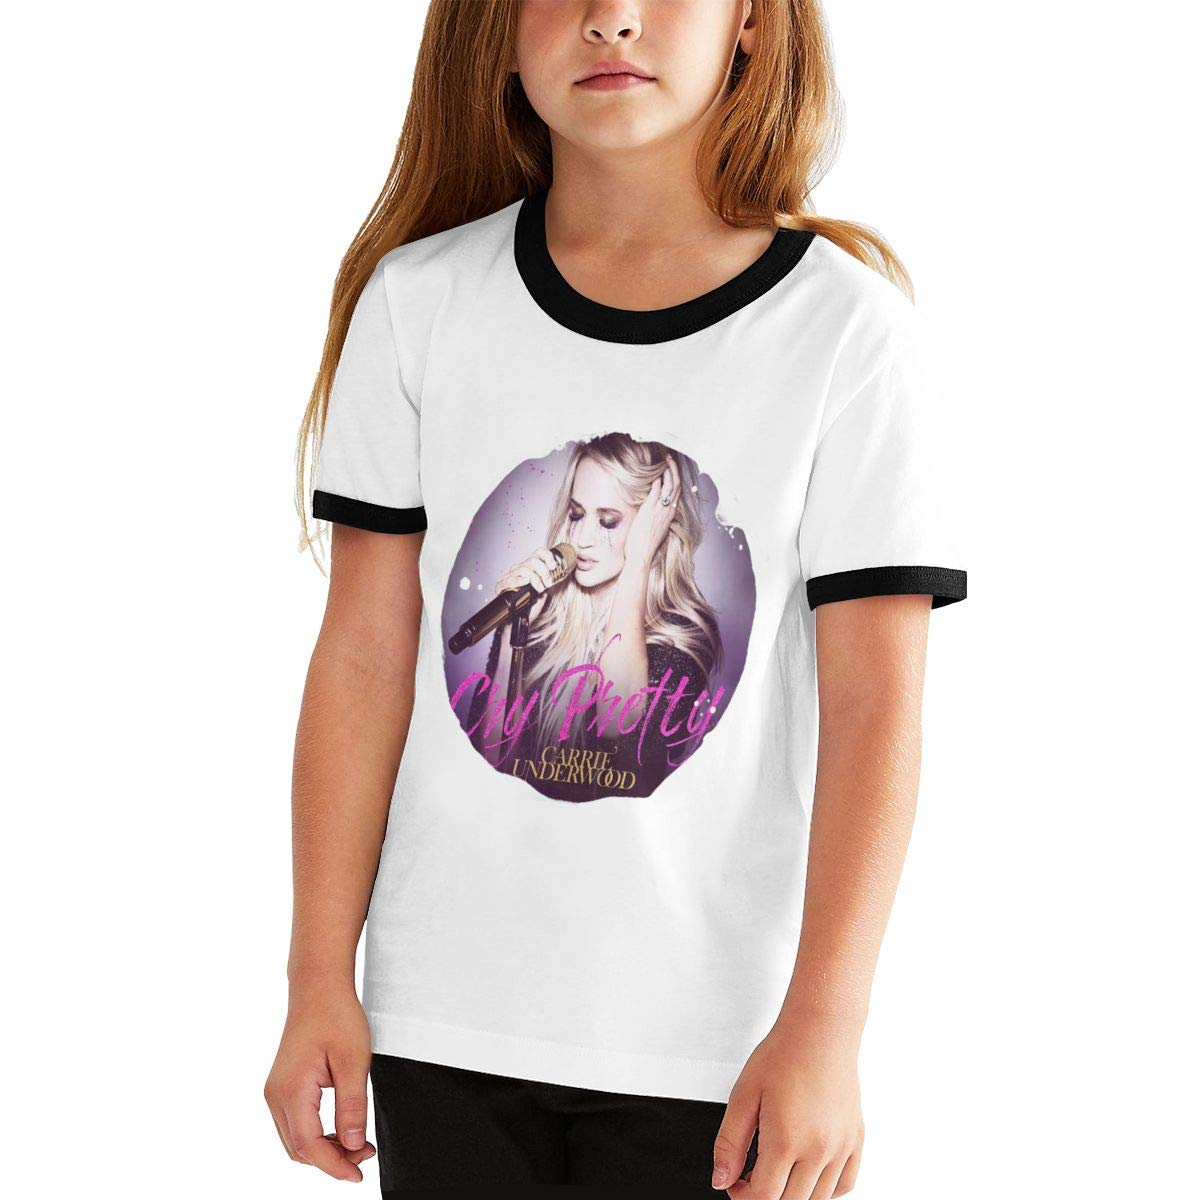 Nevaehbriella Carrie Underwood Cry Pretty Cotton Girls Boys T Shirt Adolescent Youth Funny Tee Black